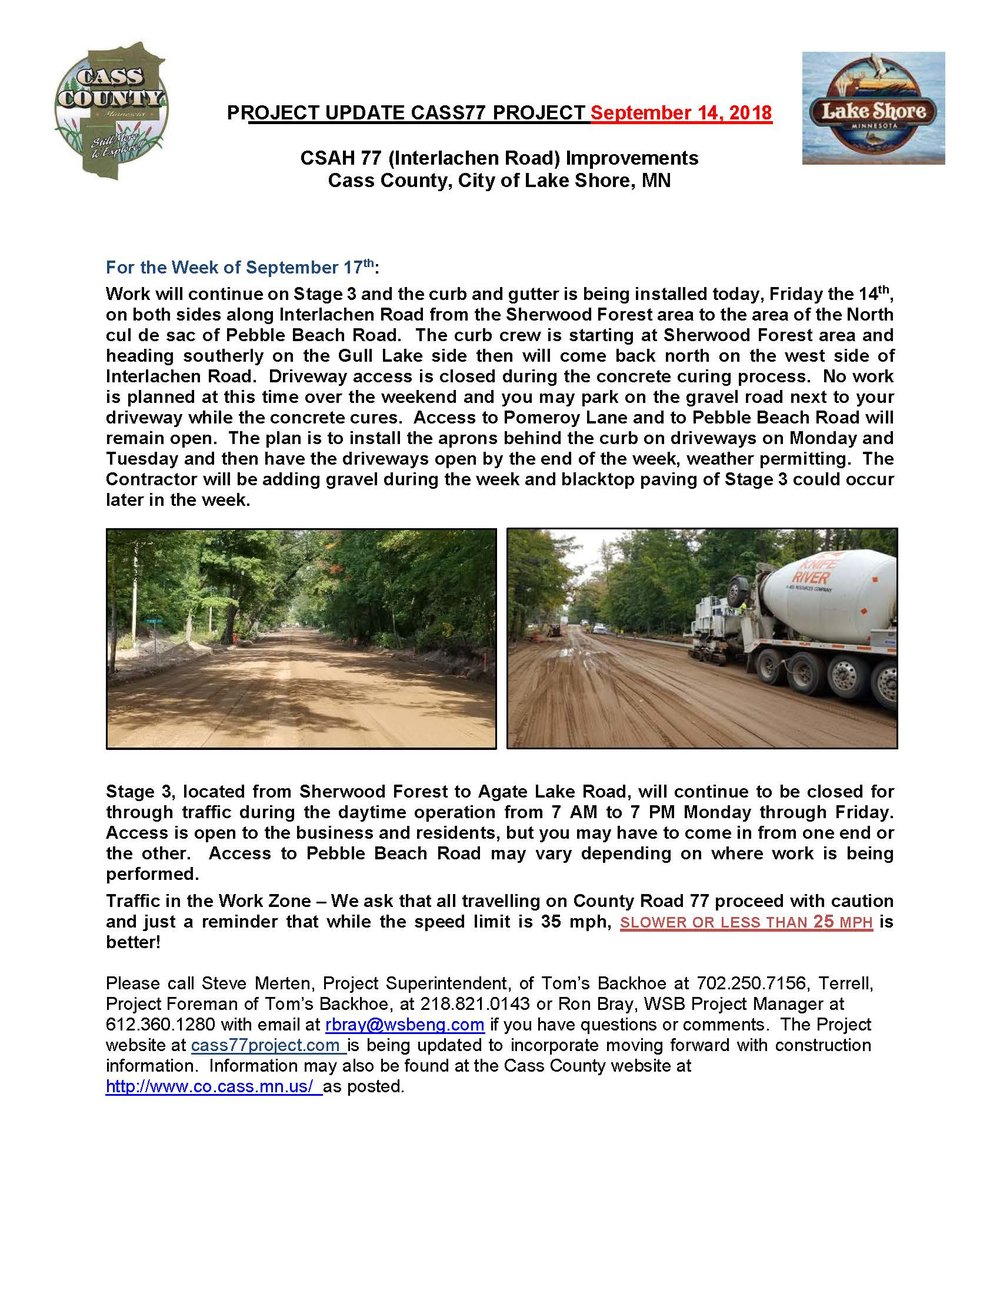 Cass County CSAH 77 Project update September 14th 2018.jpg